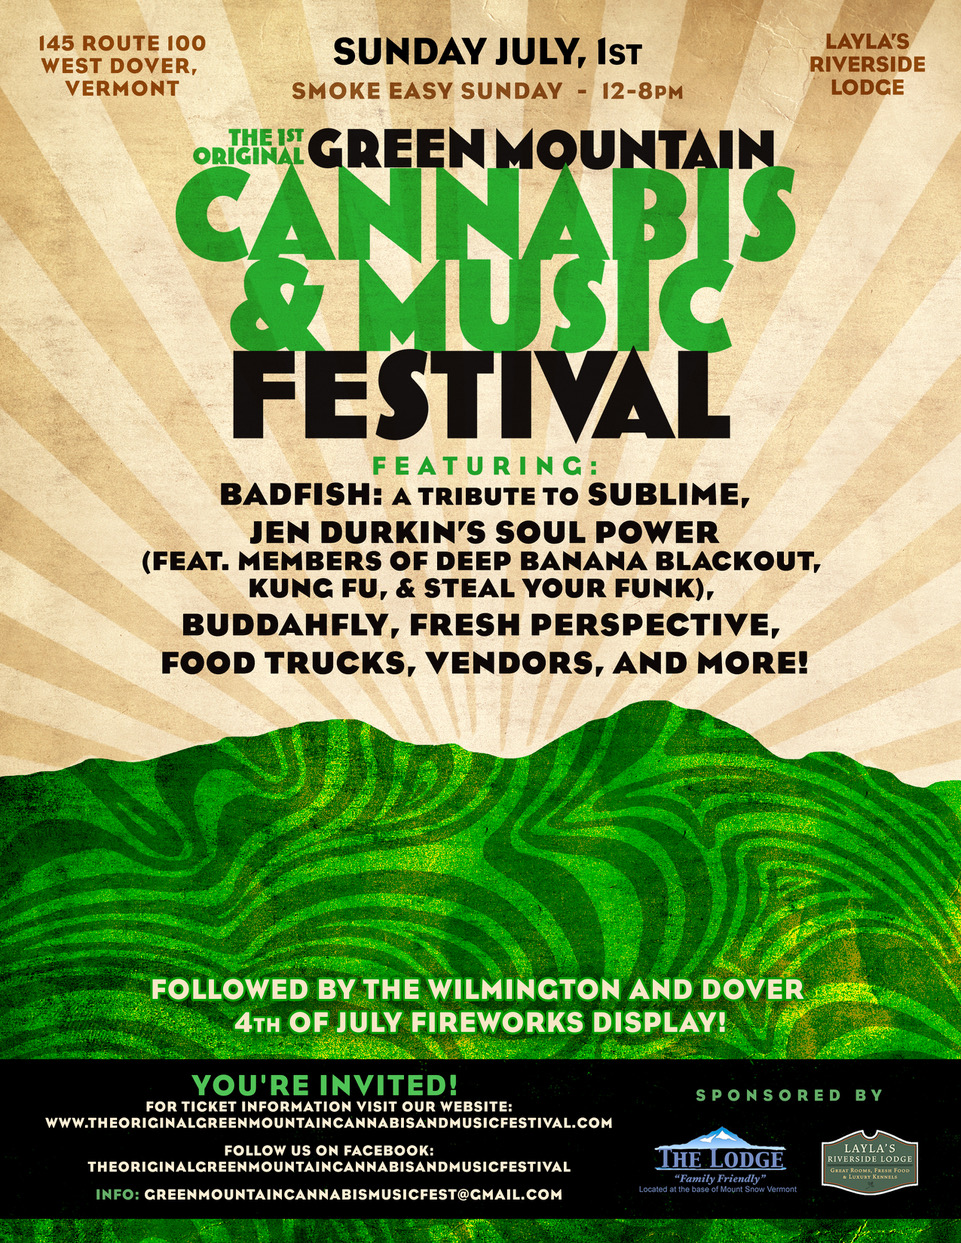 The Original Green Mountain Cannabis and Music Festival